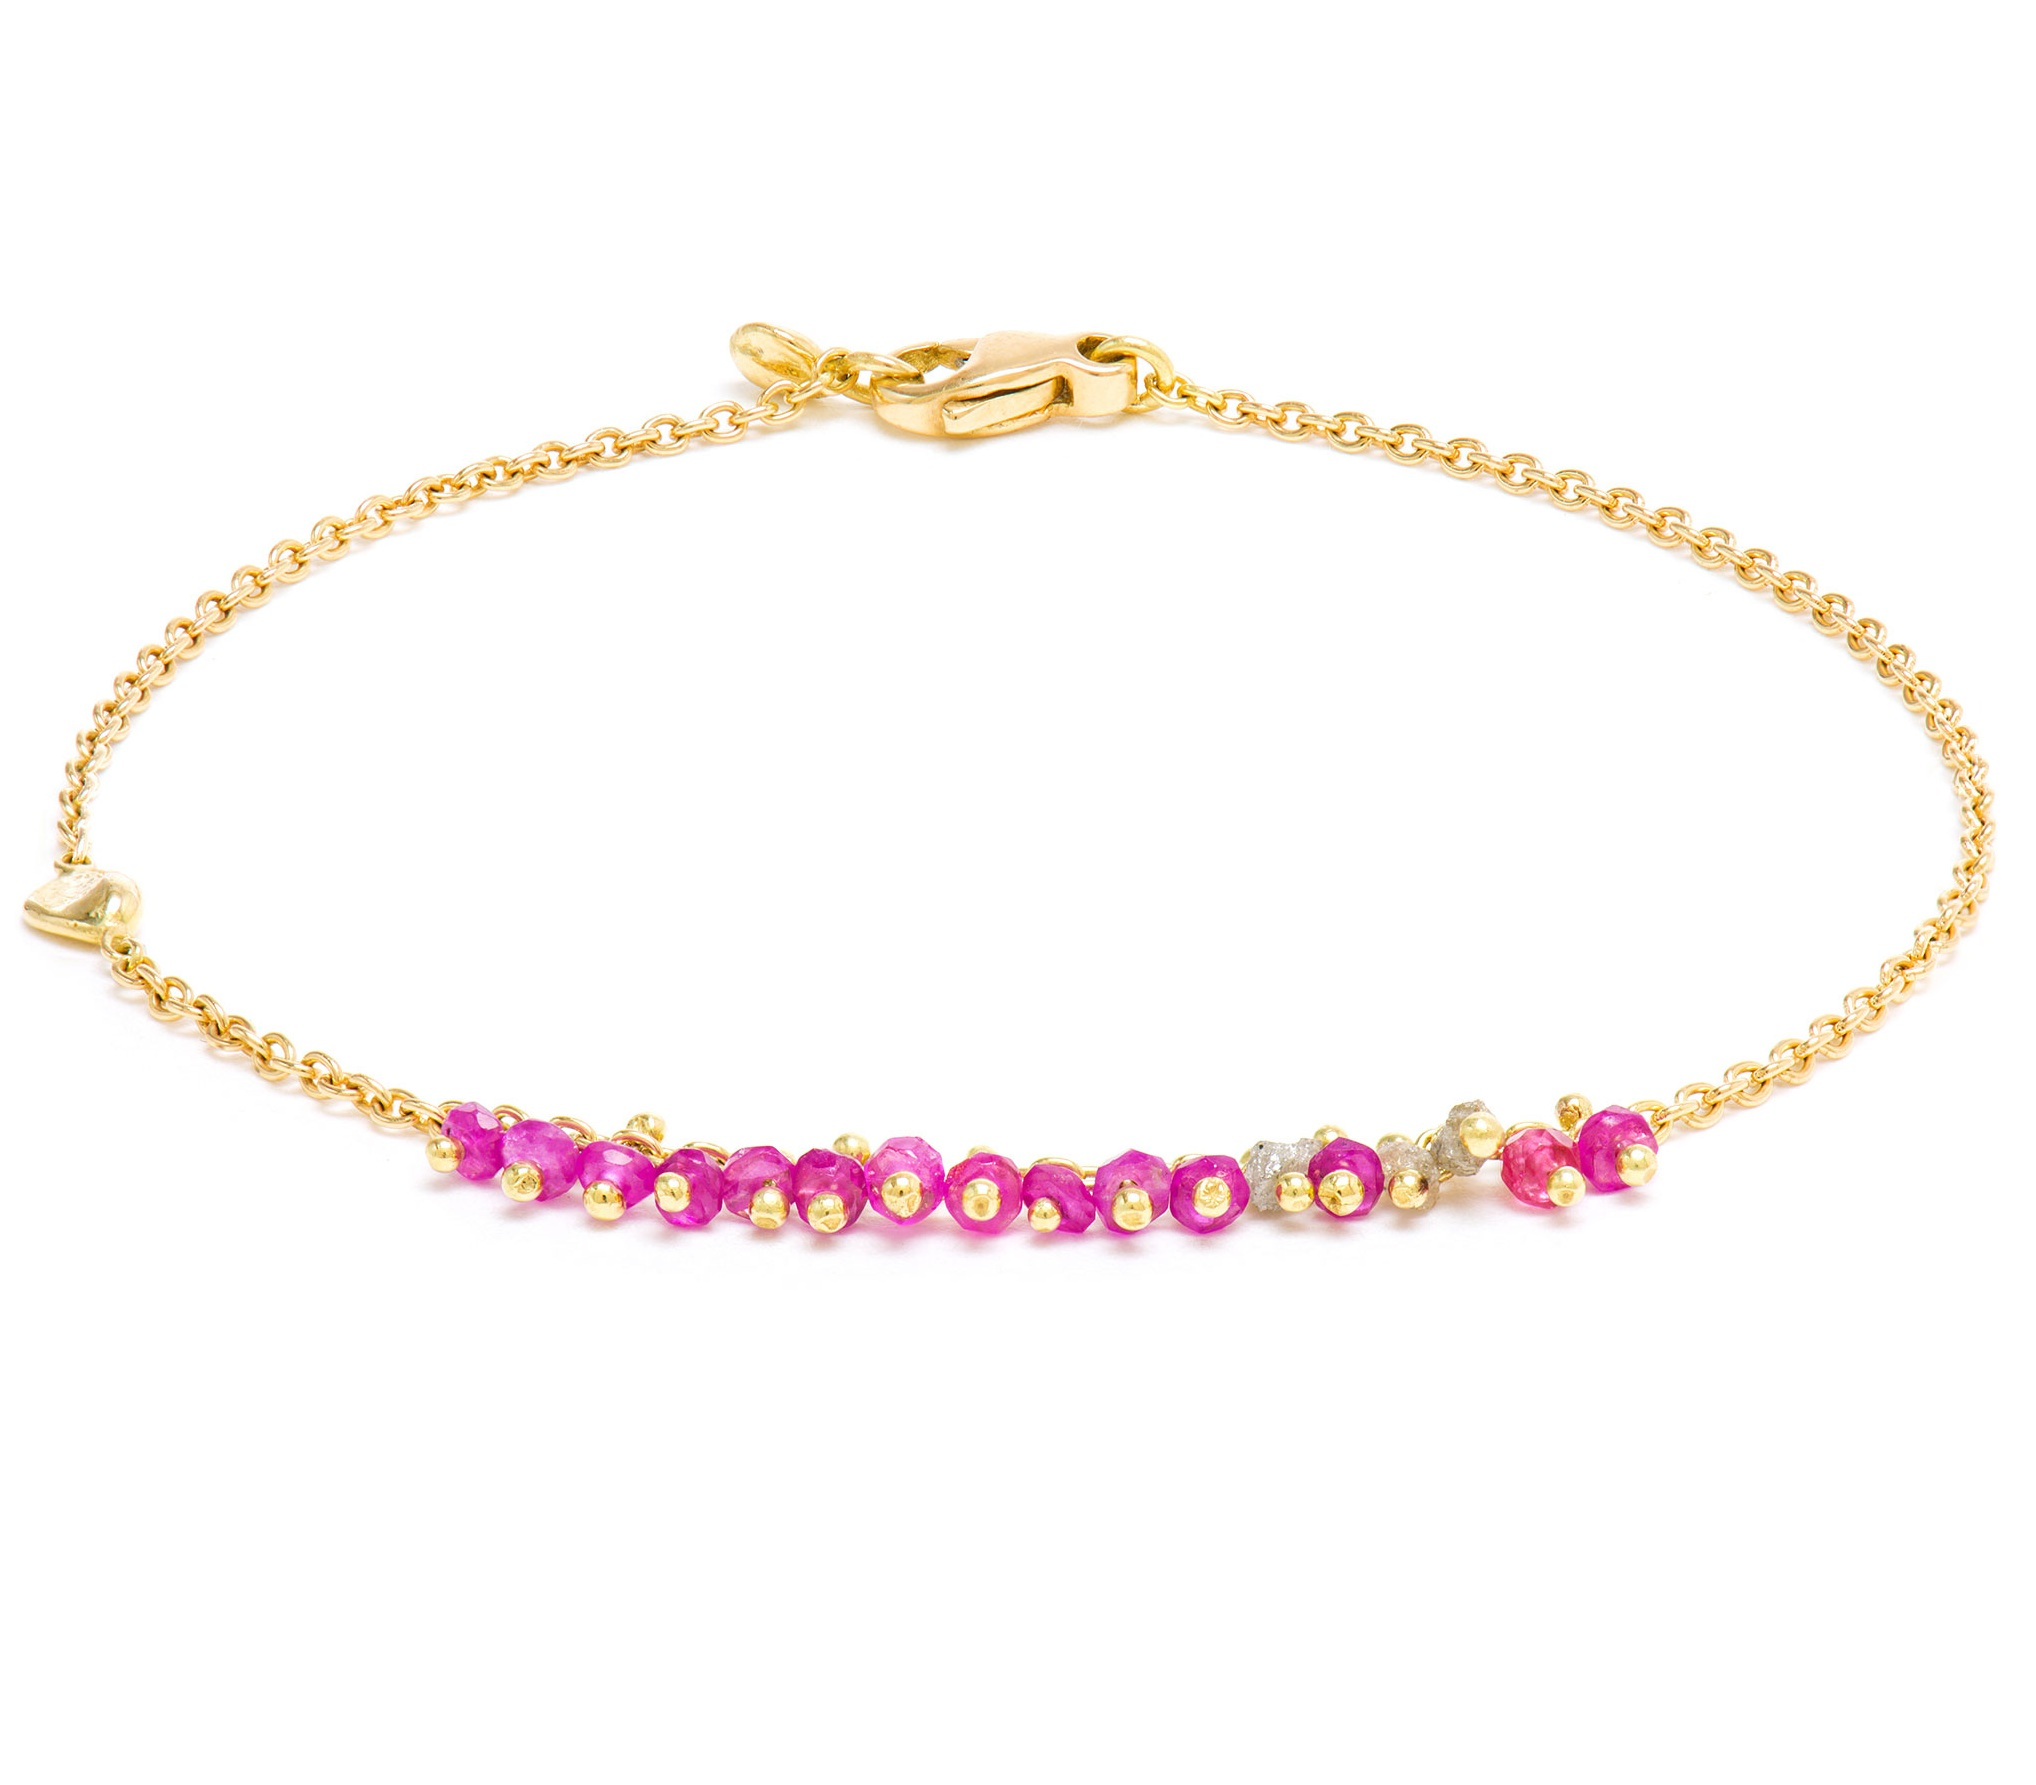 Precious Pink Spinel & Grey Diamond Nugget Bracelet